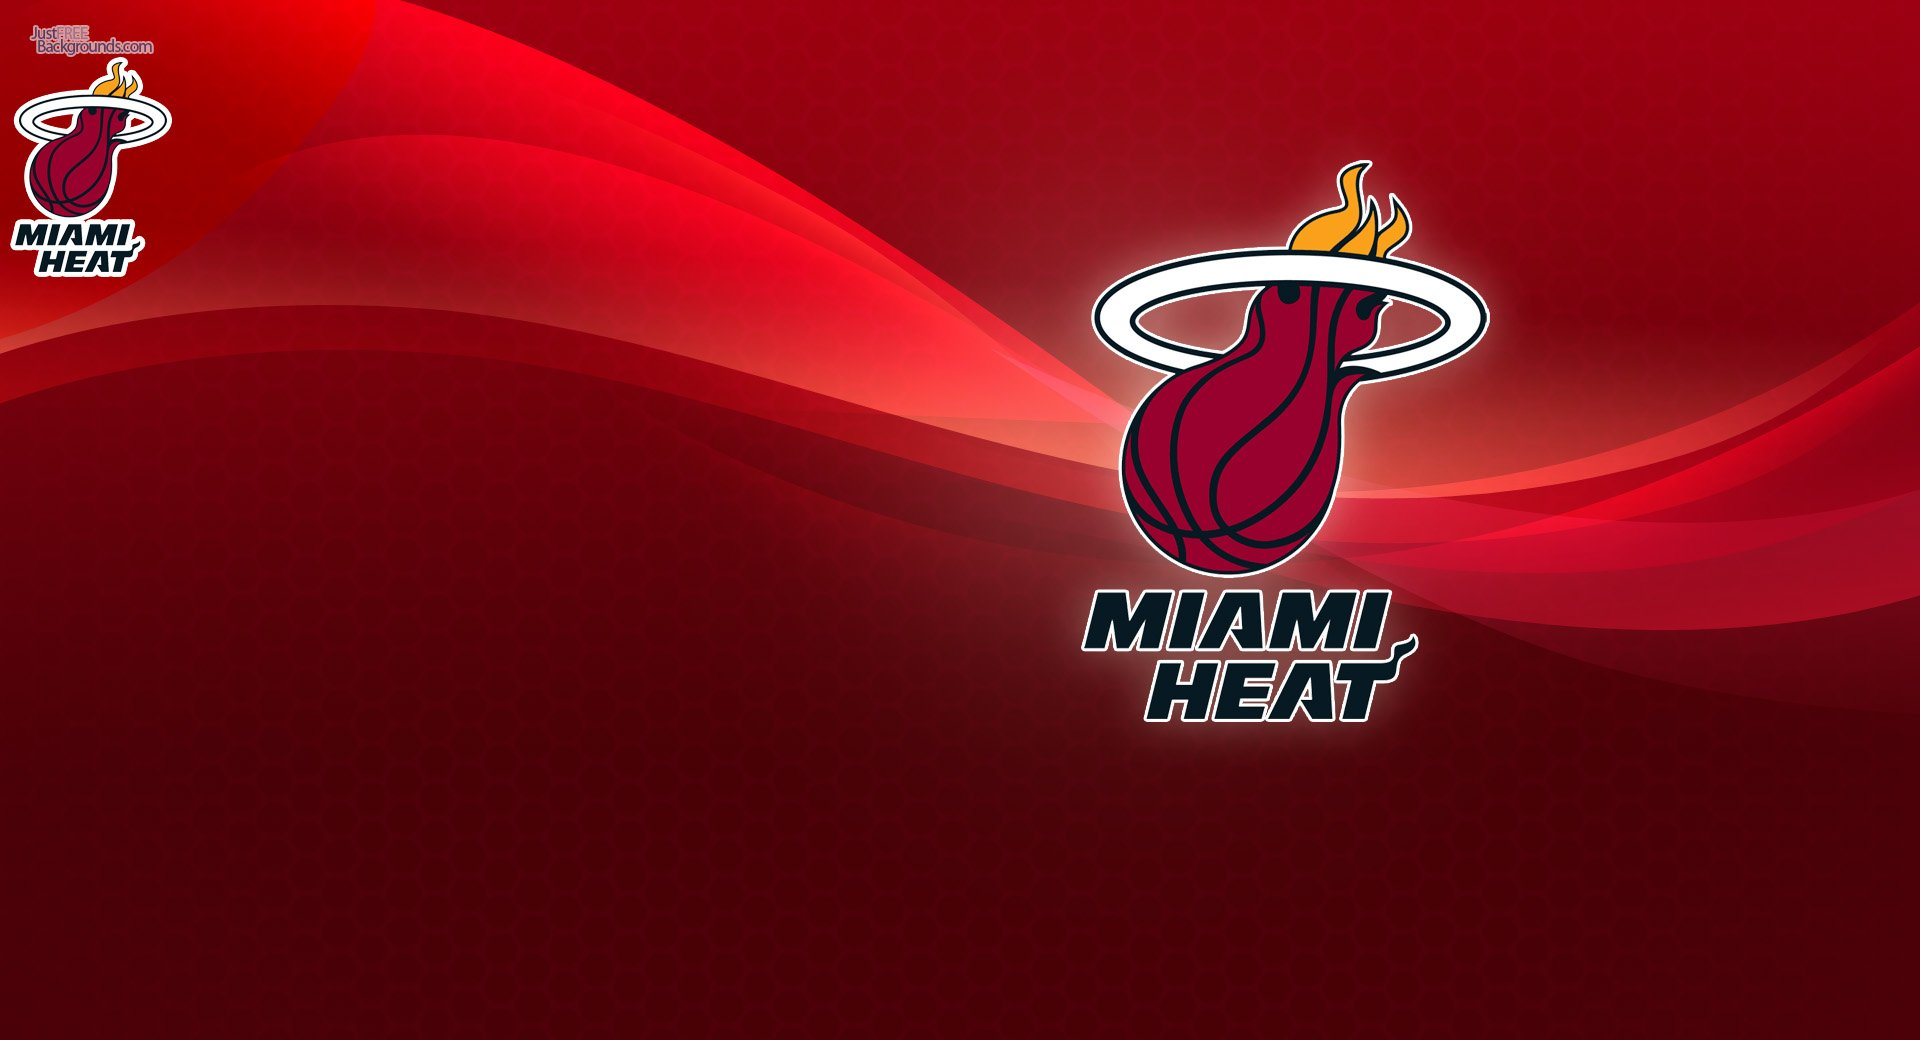 Miami Heat Wallpaper HD collection 1920x1040